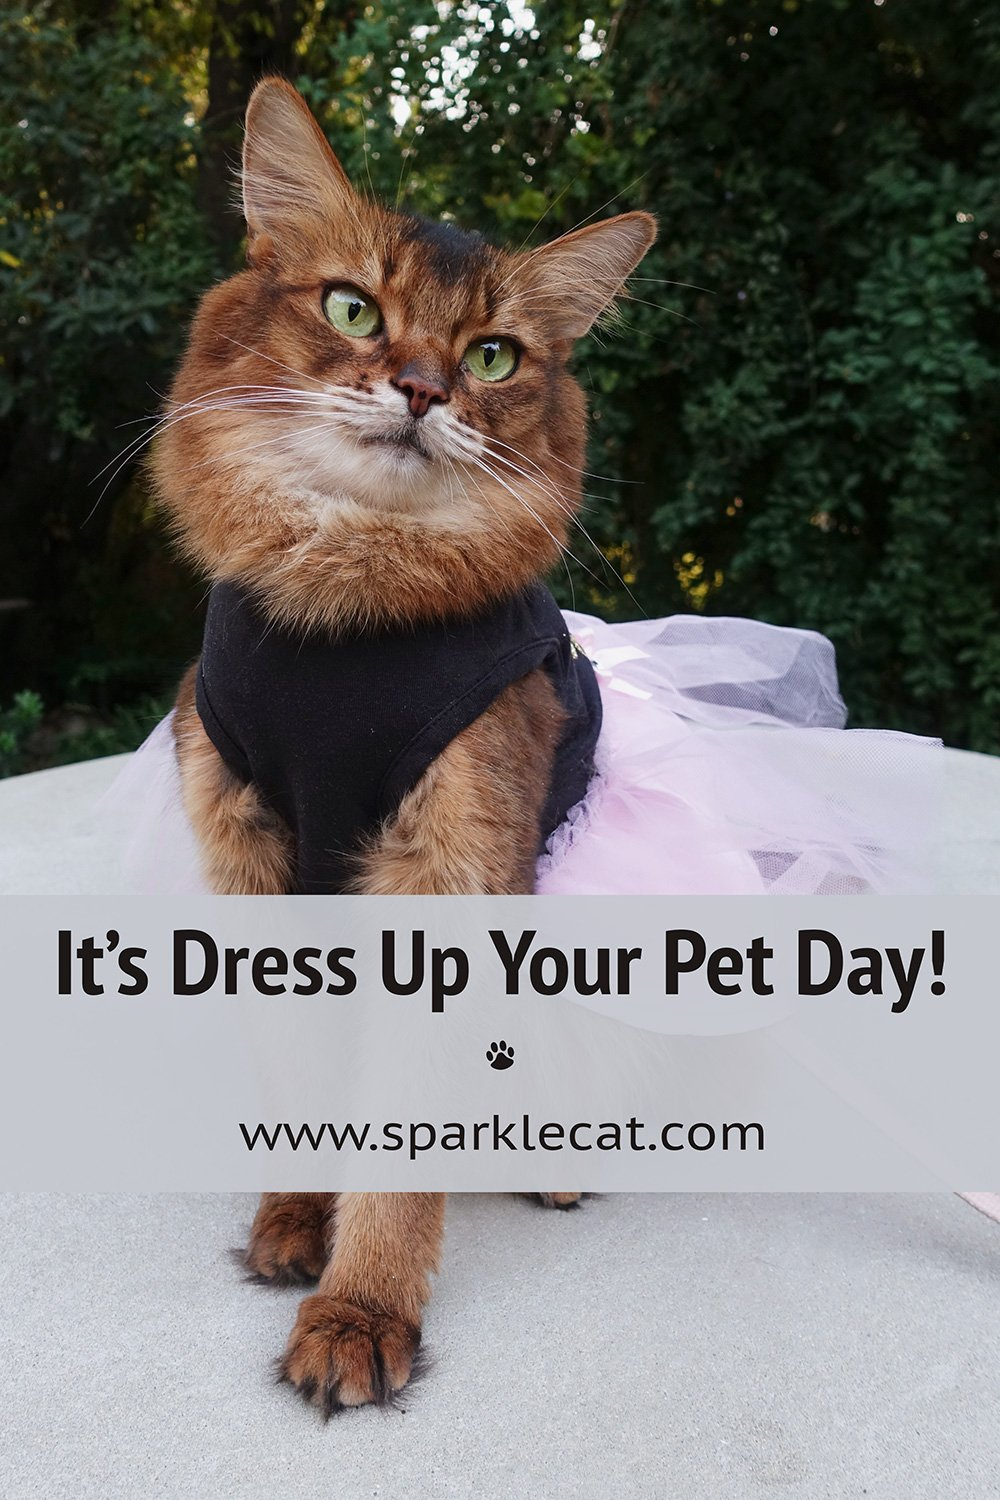 Boringest Dress Up Your Pet Day Ever